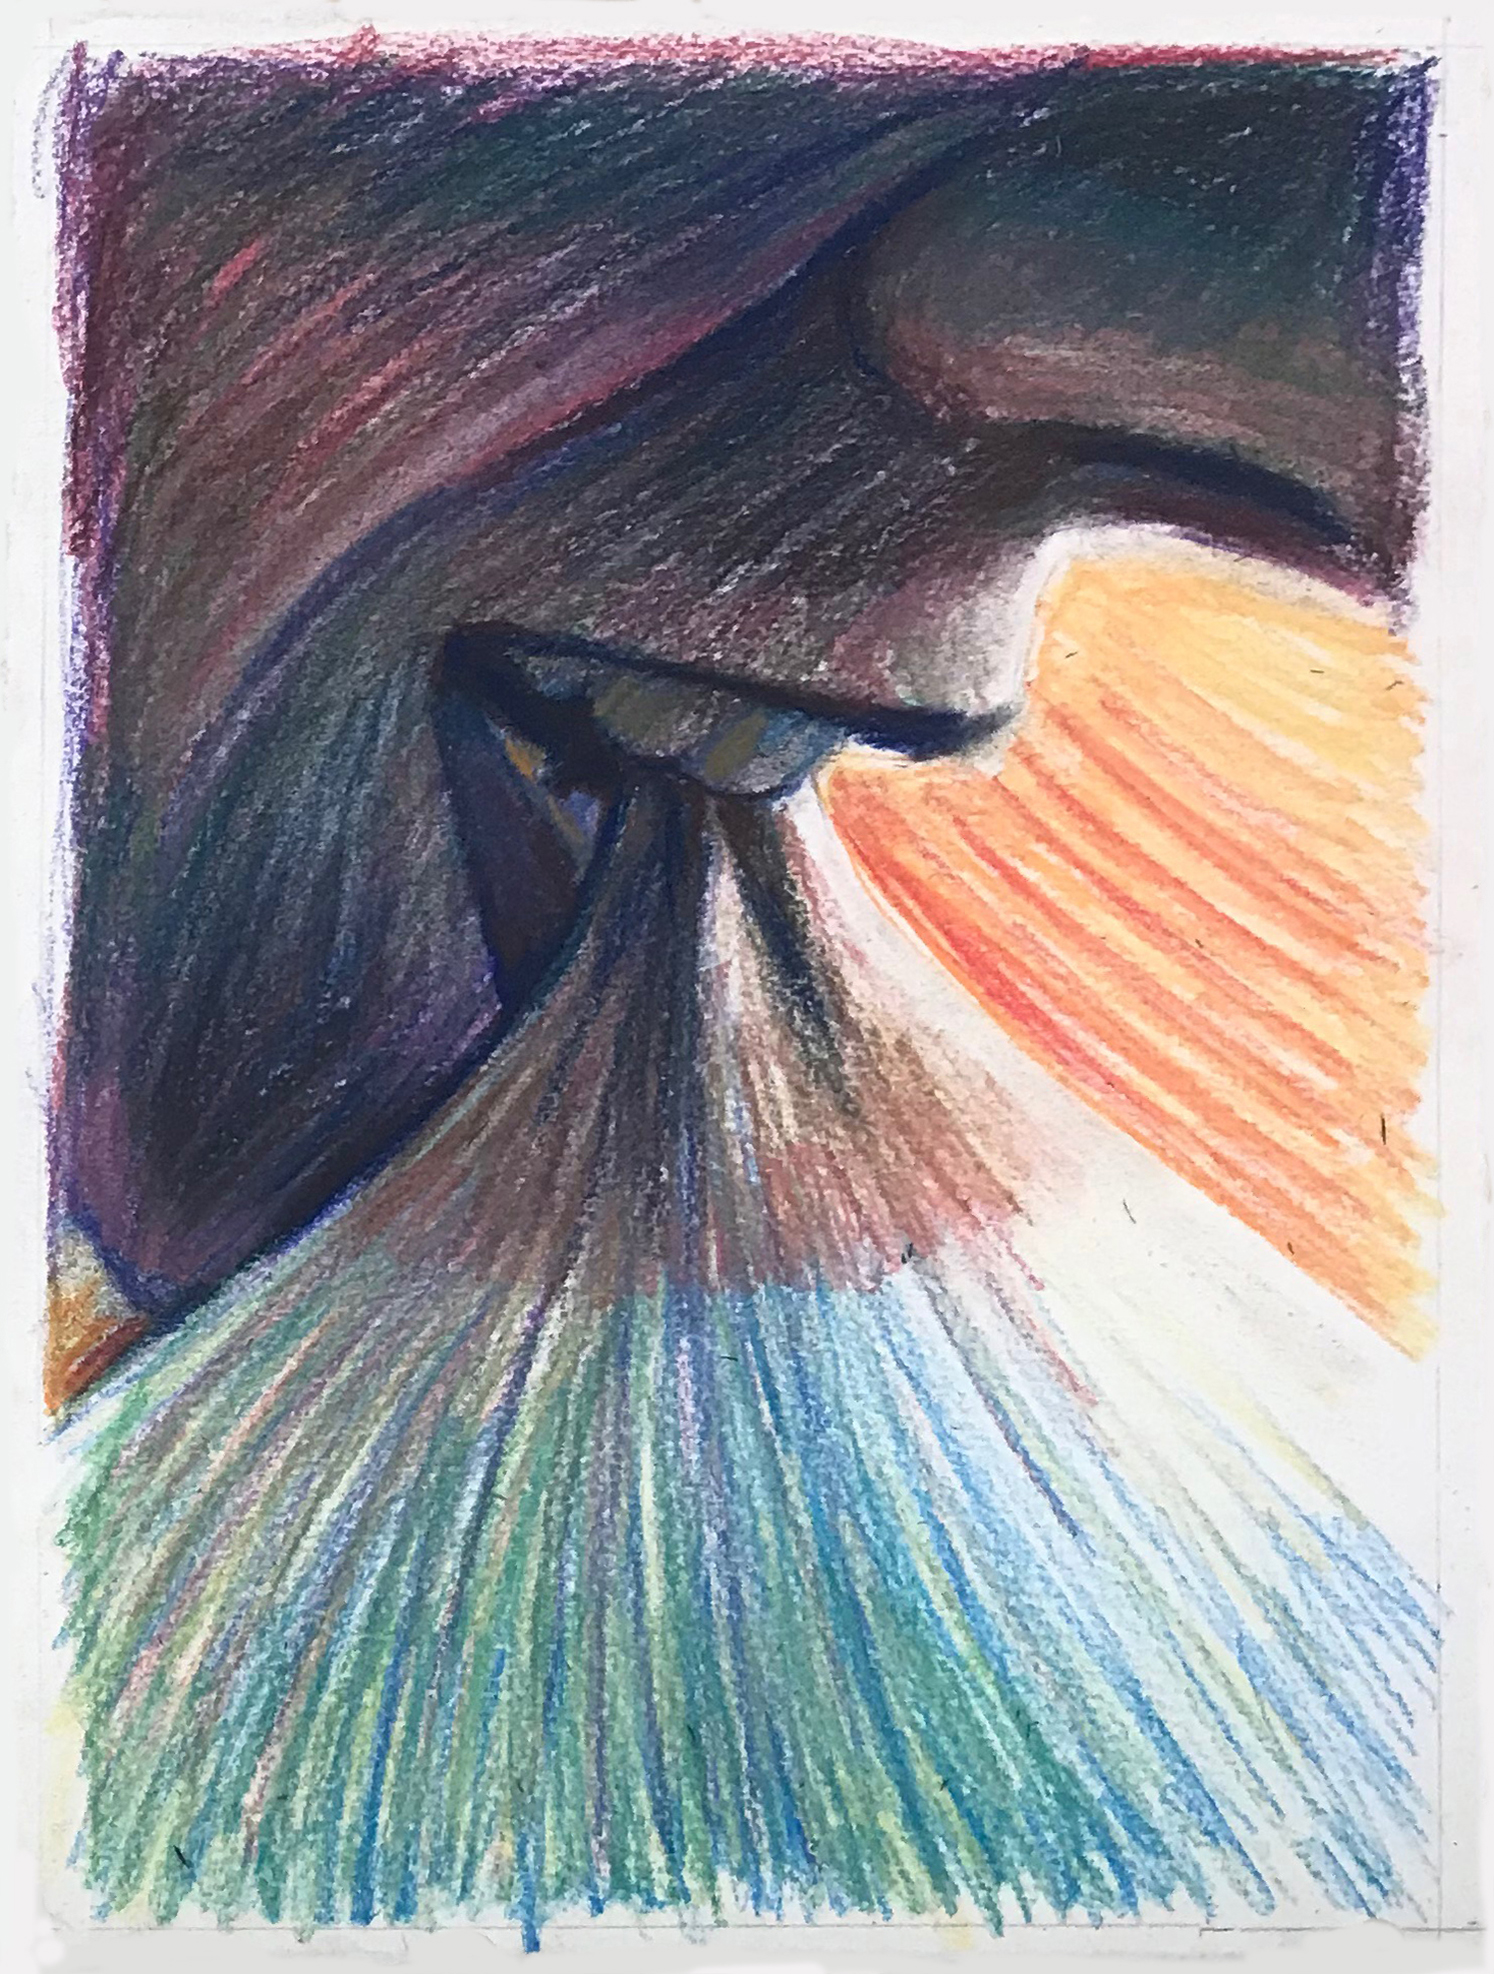 Bite   conté crayon and pastel on paper  9 X 12 inches  2019